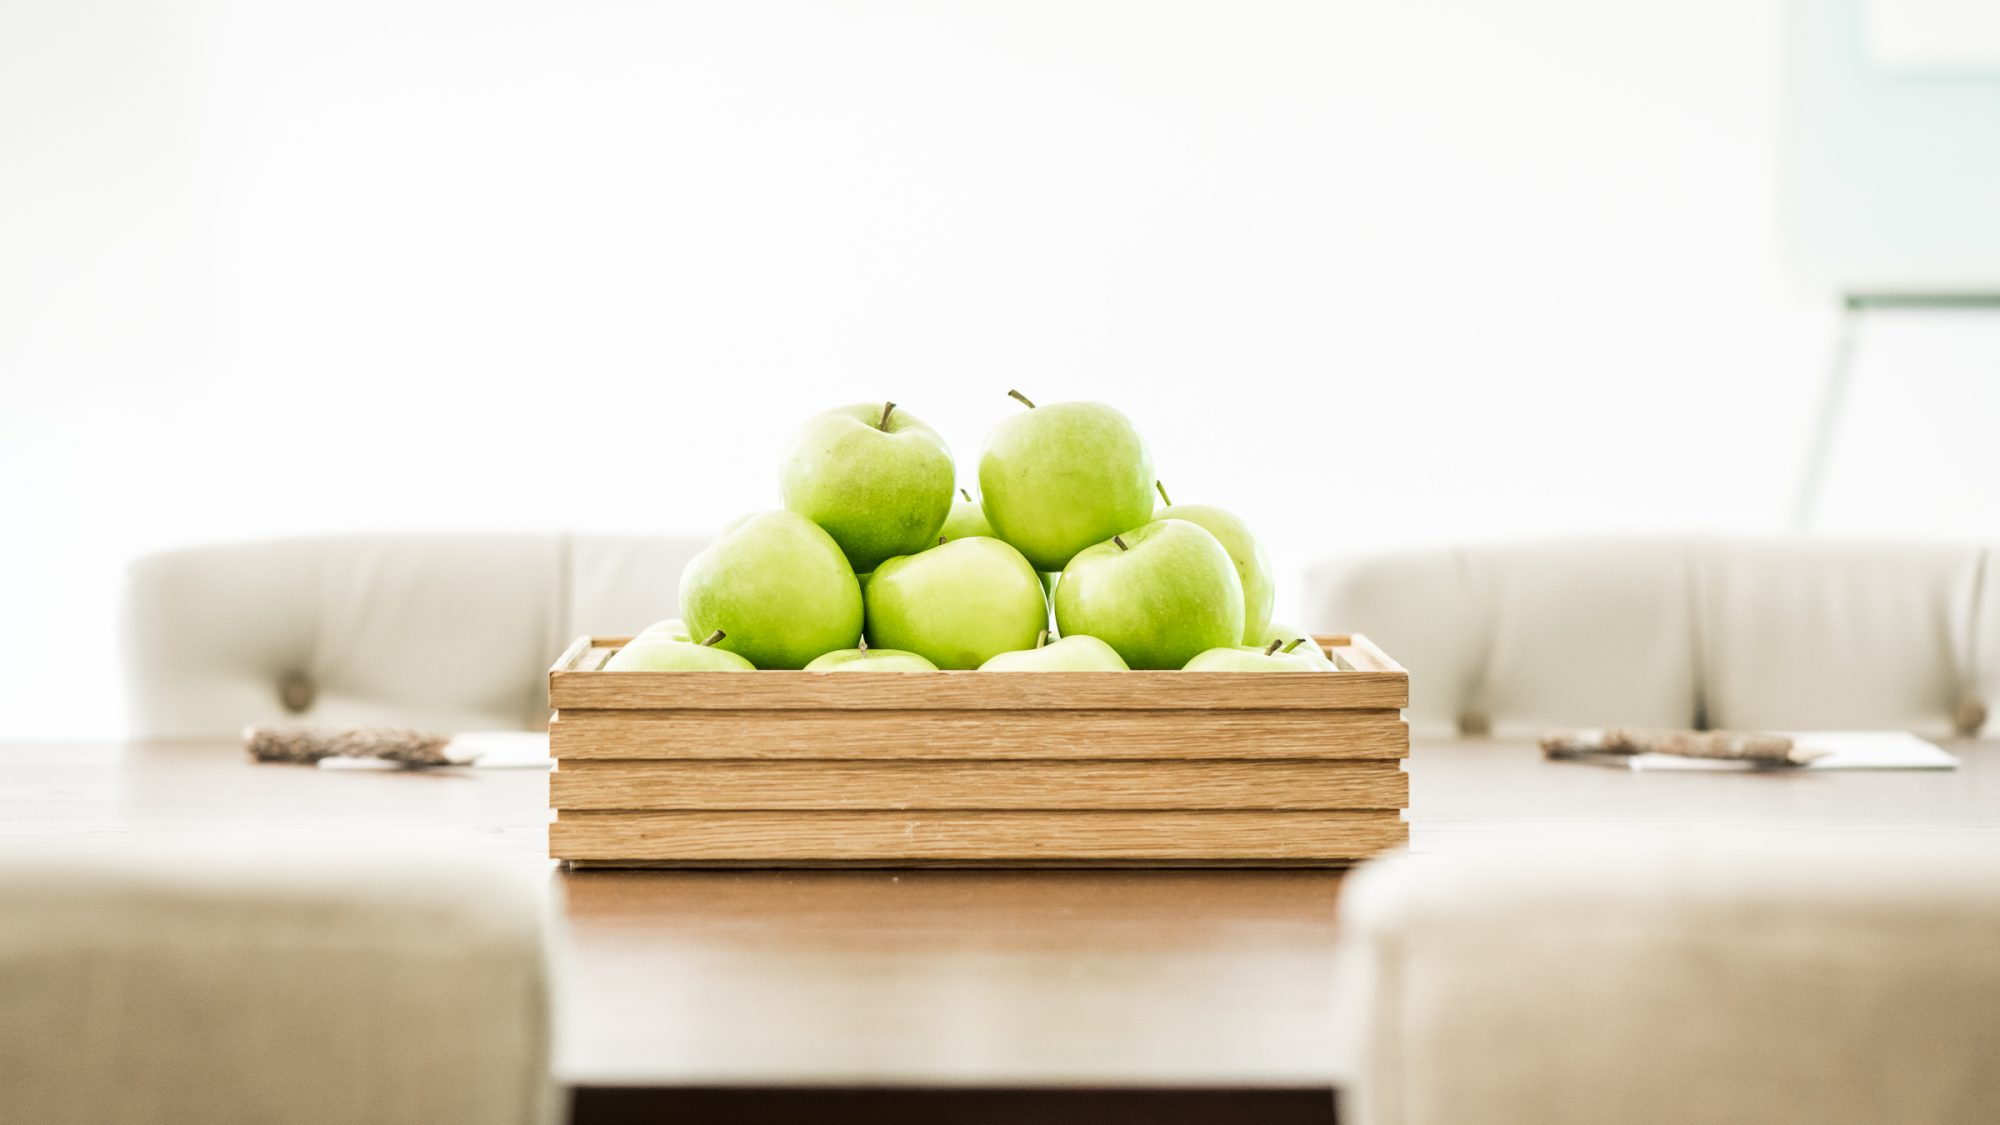 Green apple stack on table